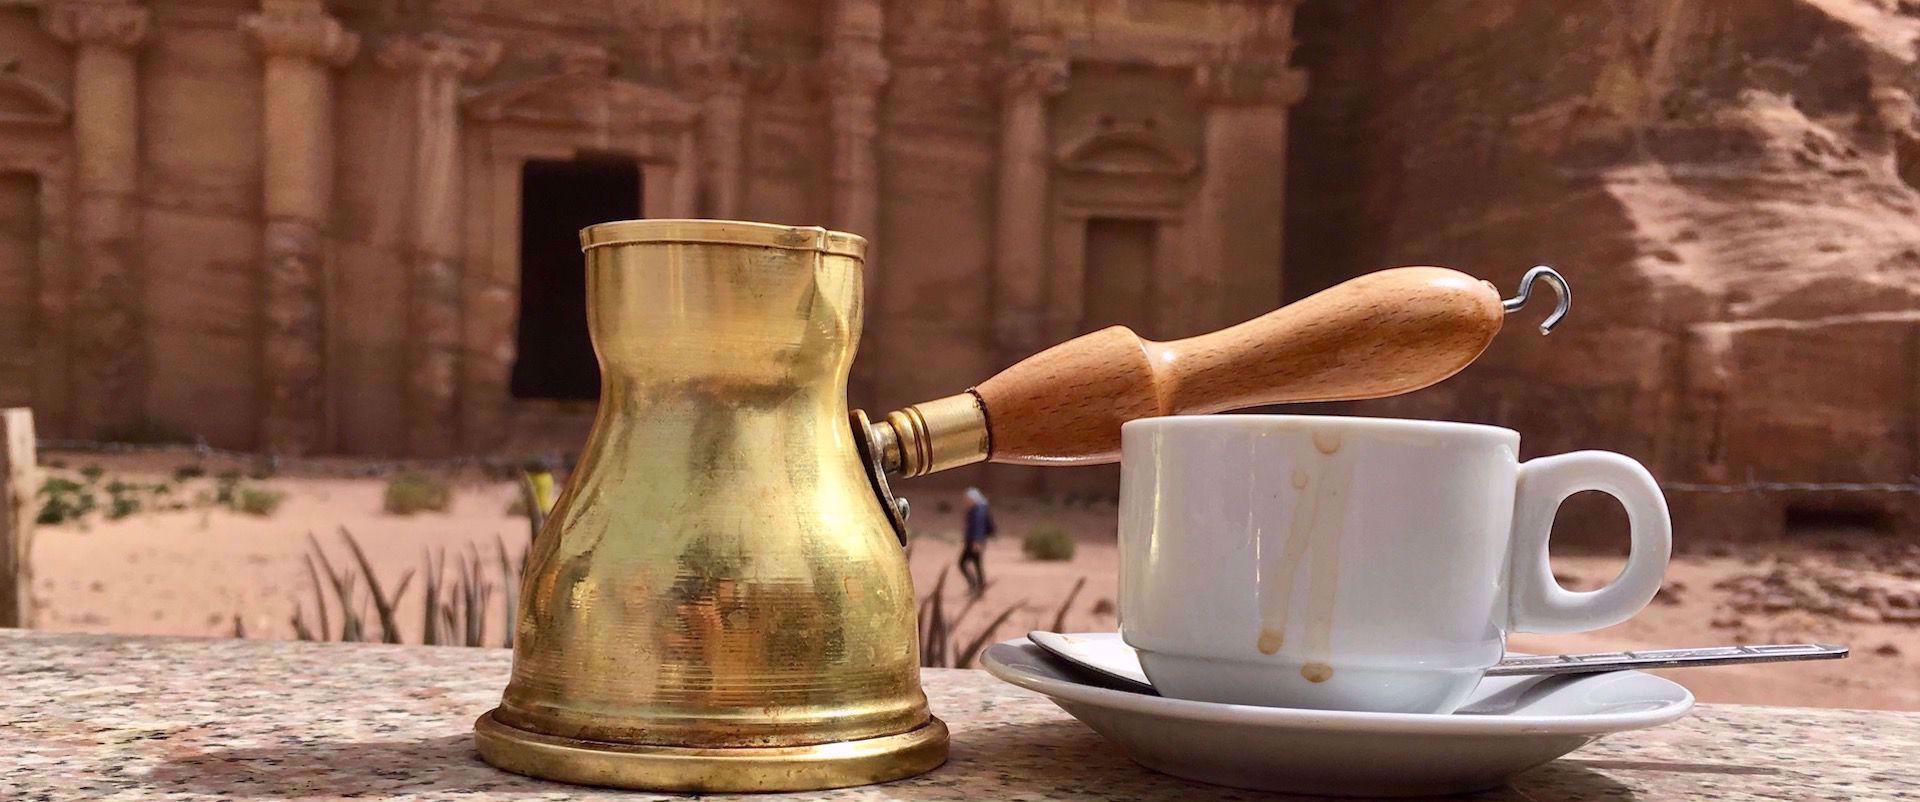 traditional coffee maker and coffee cup at petra jordan